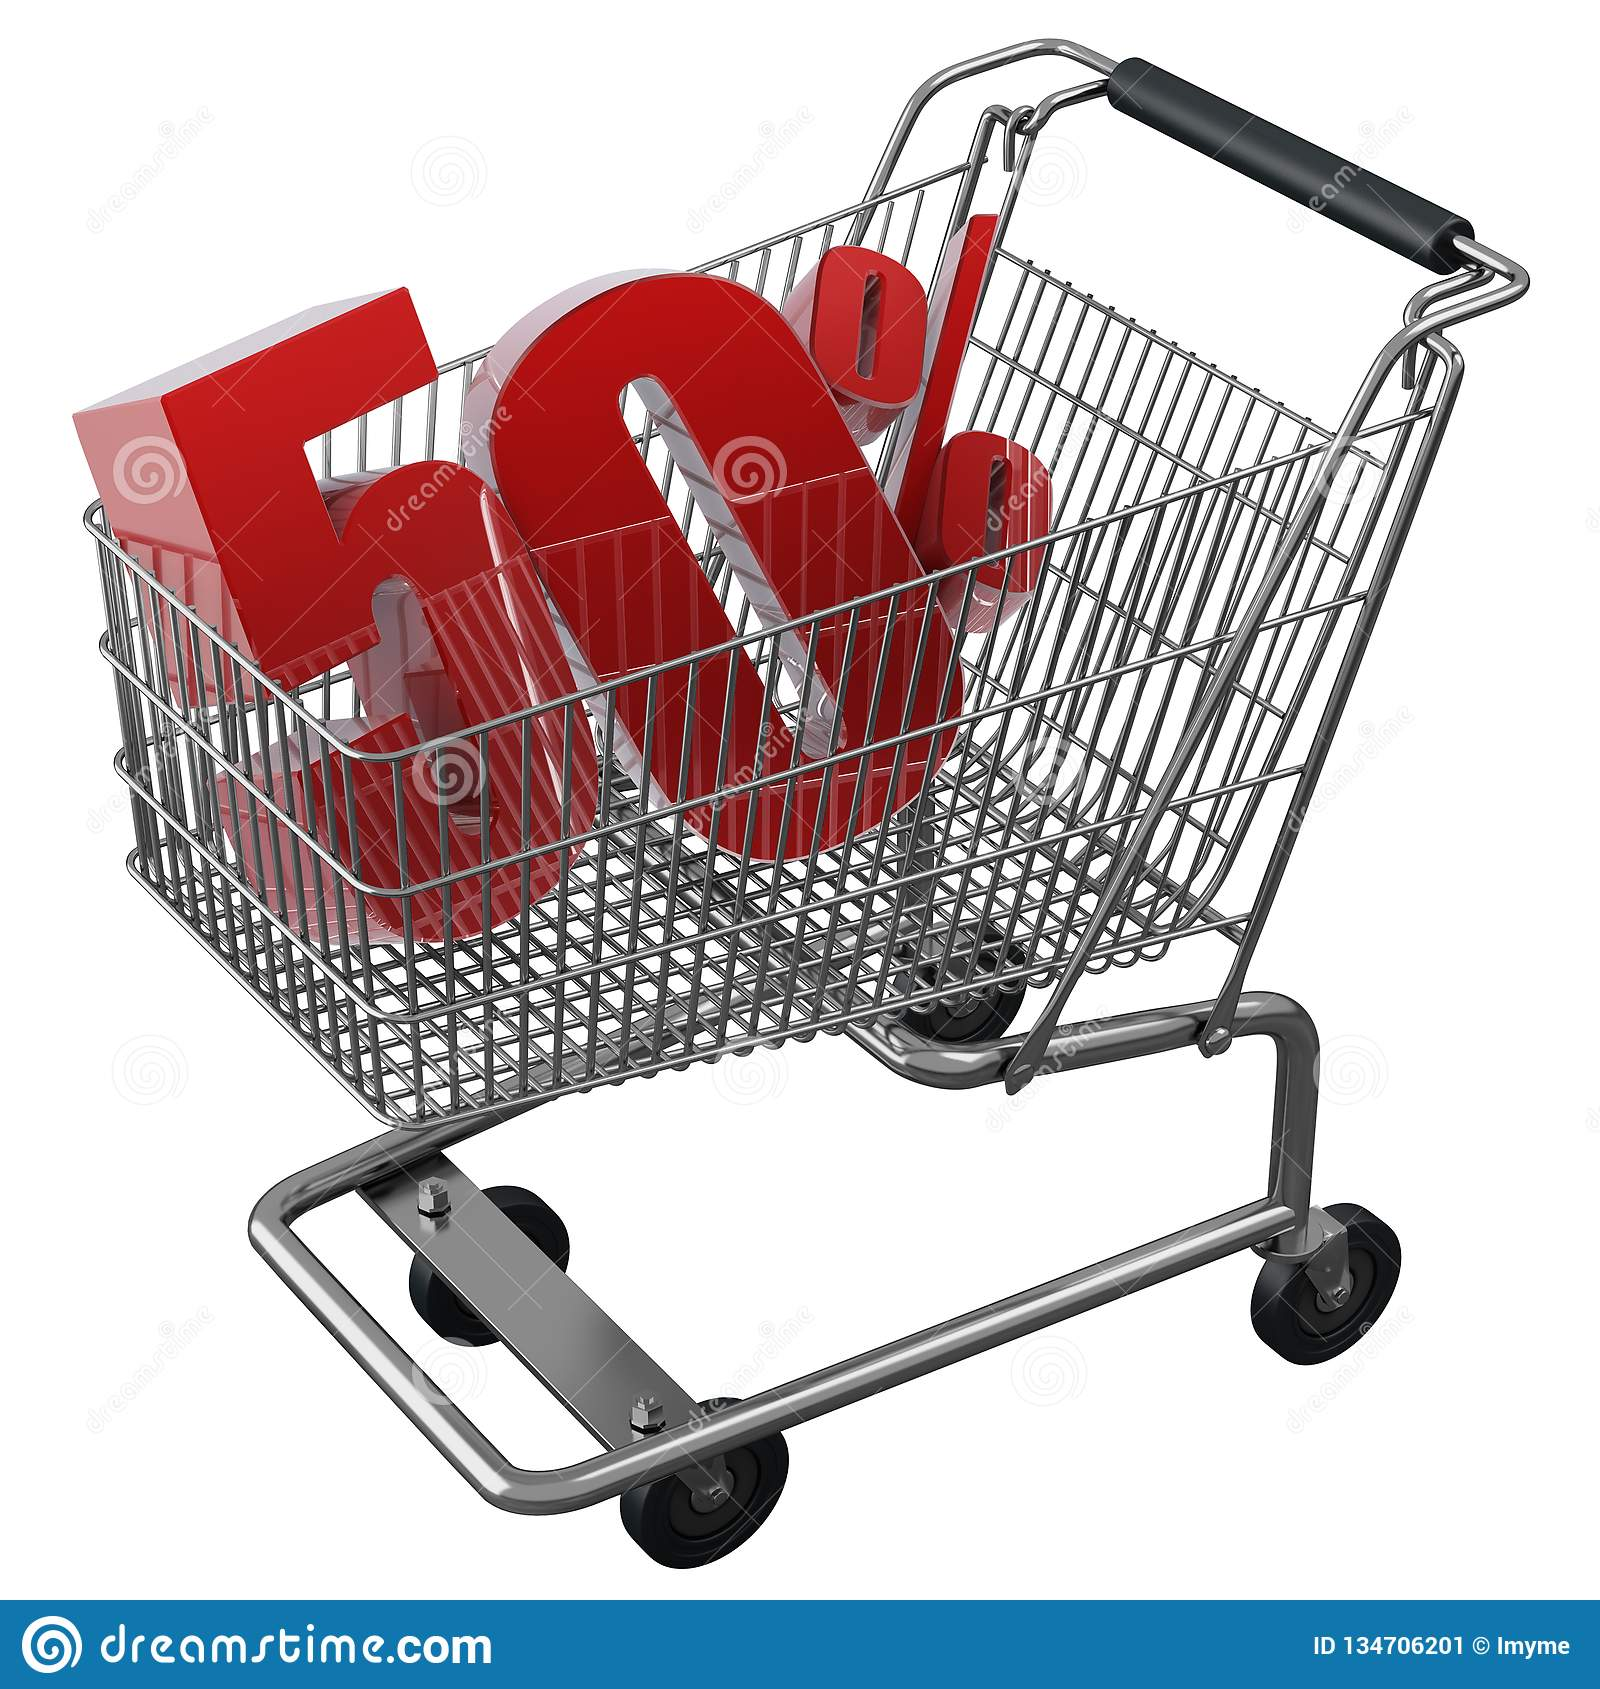 3D illustration of Shopping cart with 50 pocent discount in red isolated